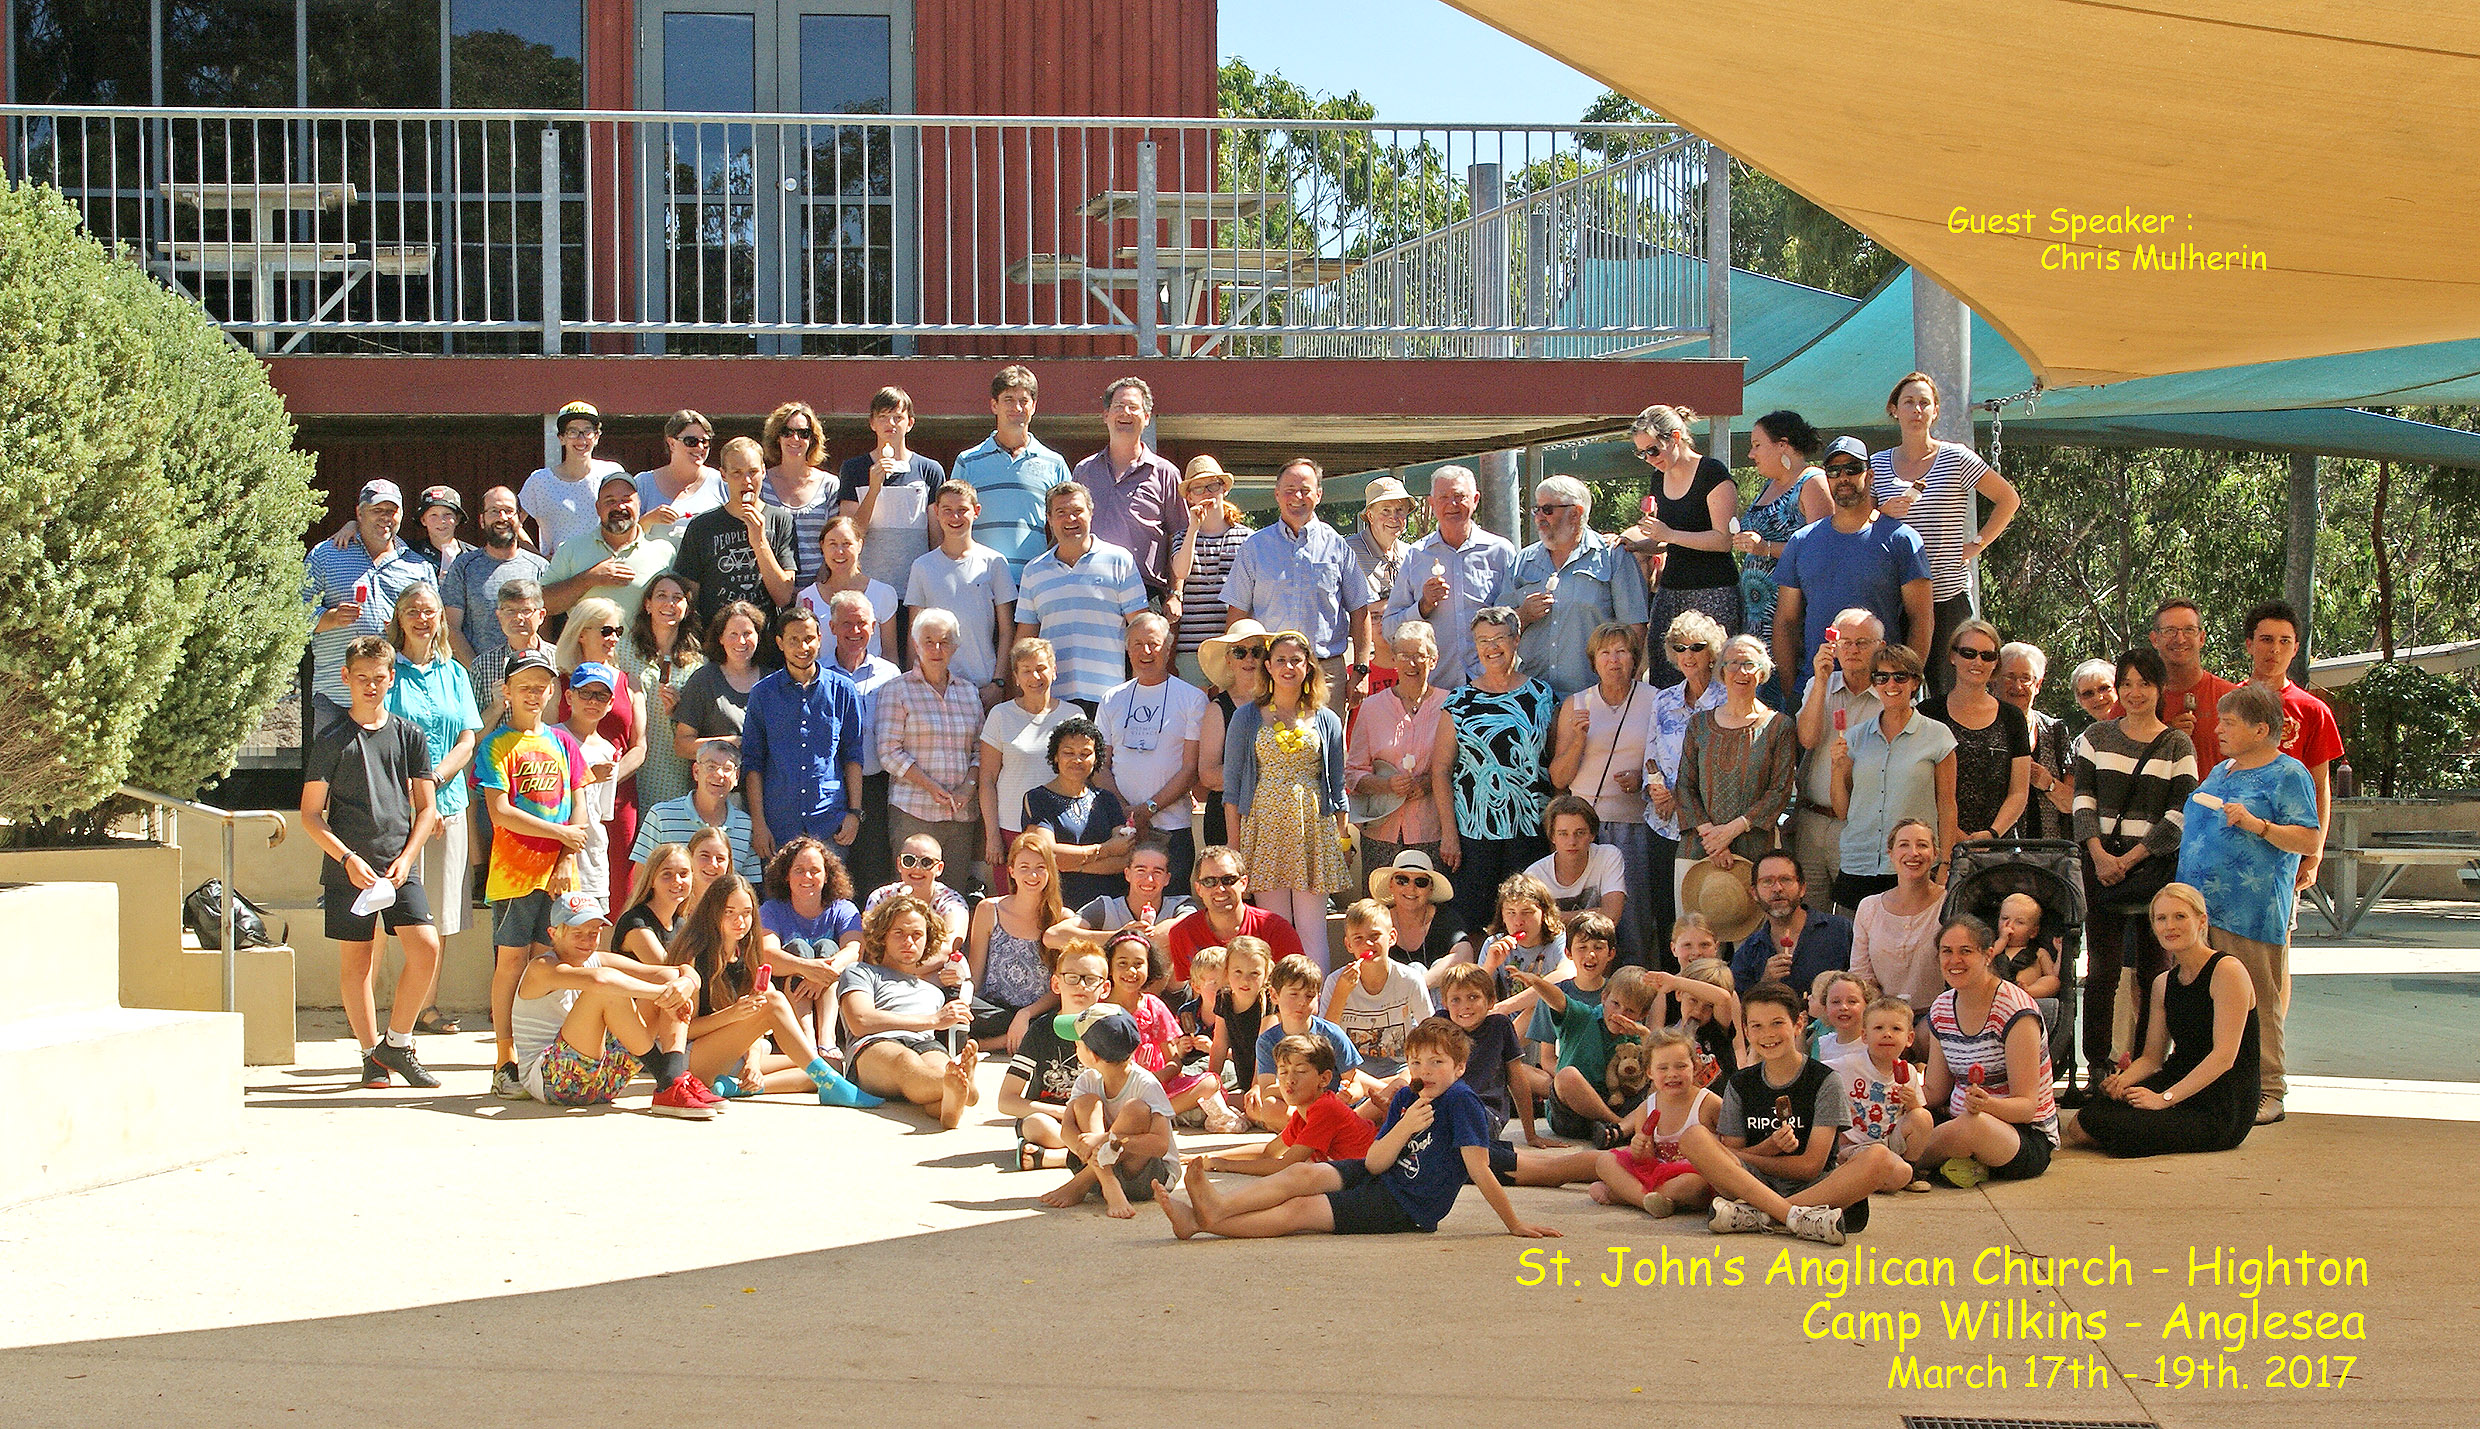 CHURCH CAMP GROUP PHOTO 2017.JPG